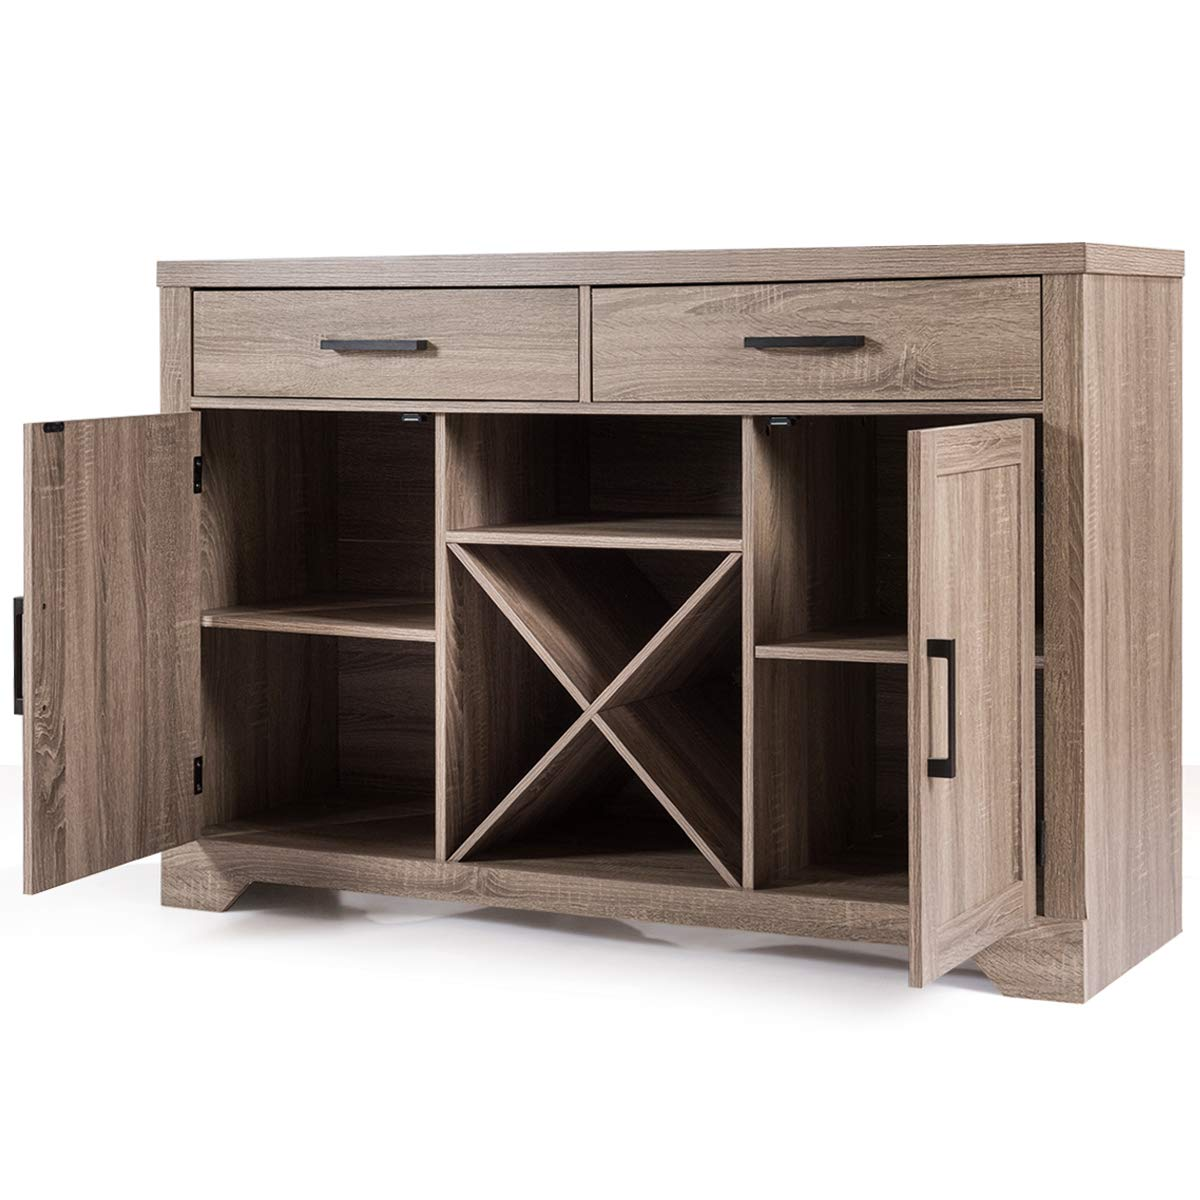 Giantex Buffet Cabinet Sideboard with Two Drawers Two Cabinets One Shelf and 4 Bottle Wine Rack Dining Room Home Furniture Console Storage Cabinet, Natural by Giantex (Image #9)